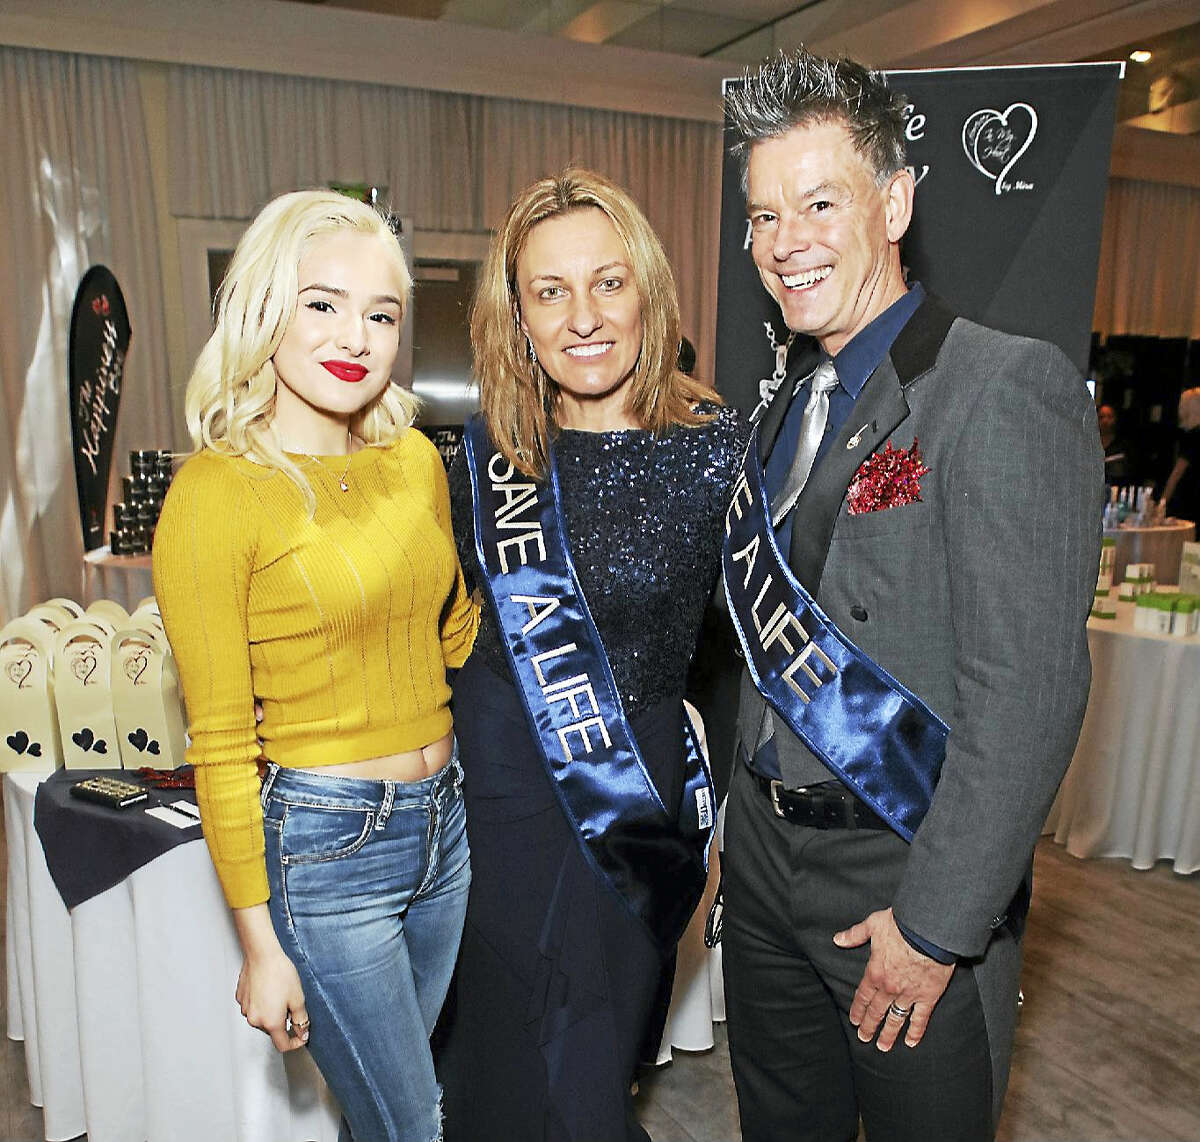 Middletown's Mira Jewelry owner Mira Alicki not only attended the Golden Globes earlier this month but her Forever in My Heart cremation bracelets were part of the goody bags. From left are dancer, choreographer and actress Chachi Gonzales, Alicki and her colleague Michael Anair at the awards ceremony Jan. 8 at the The Beverly Hilton in Beverly Hills, California.